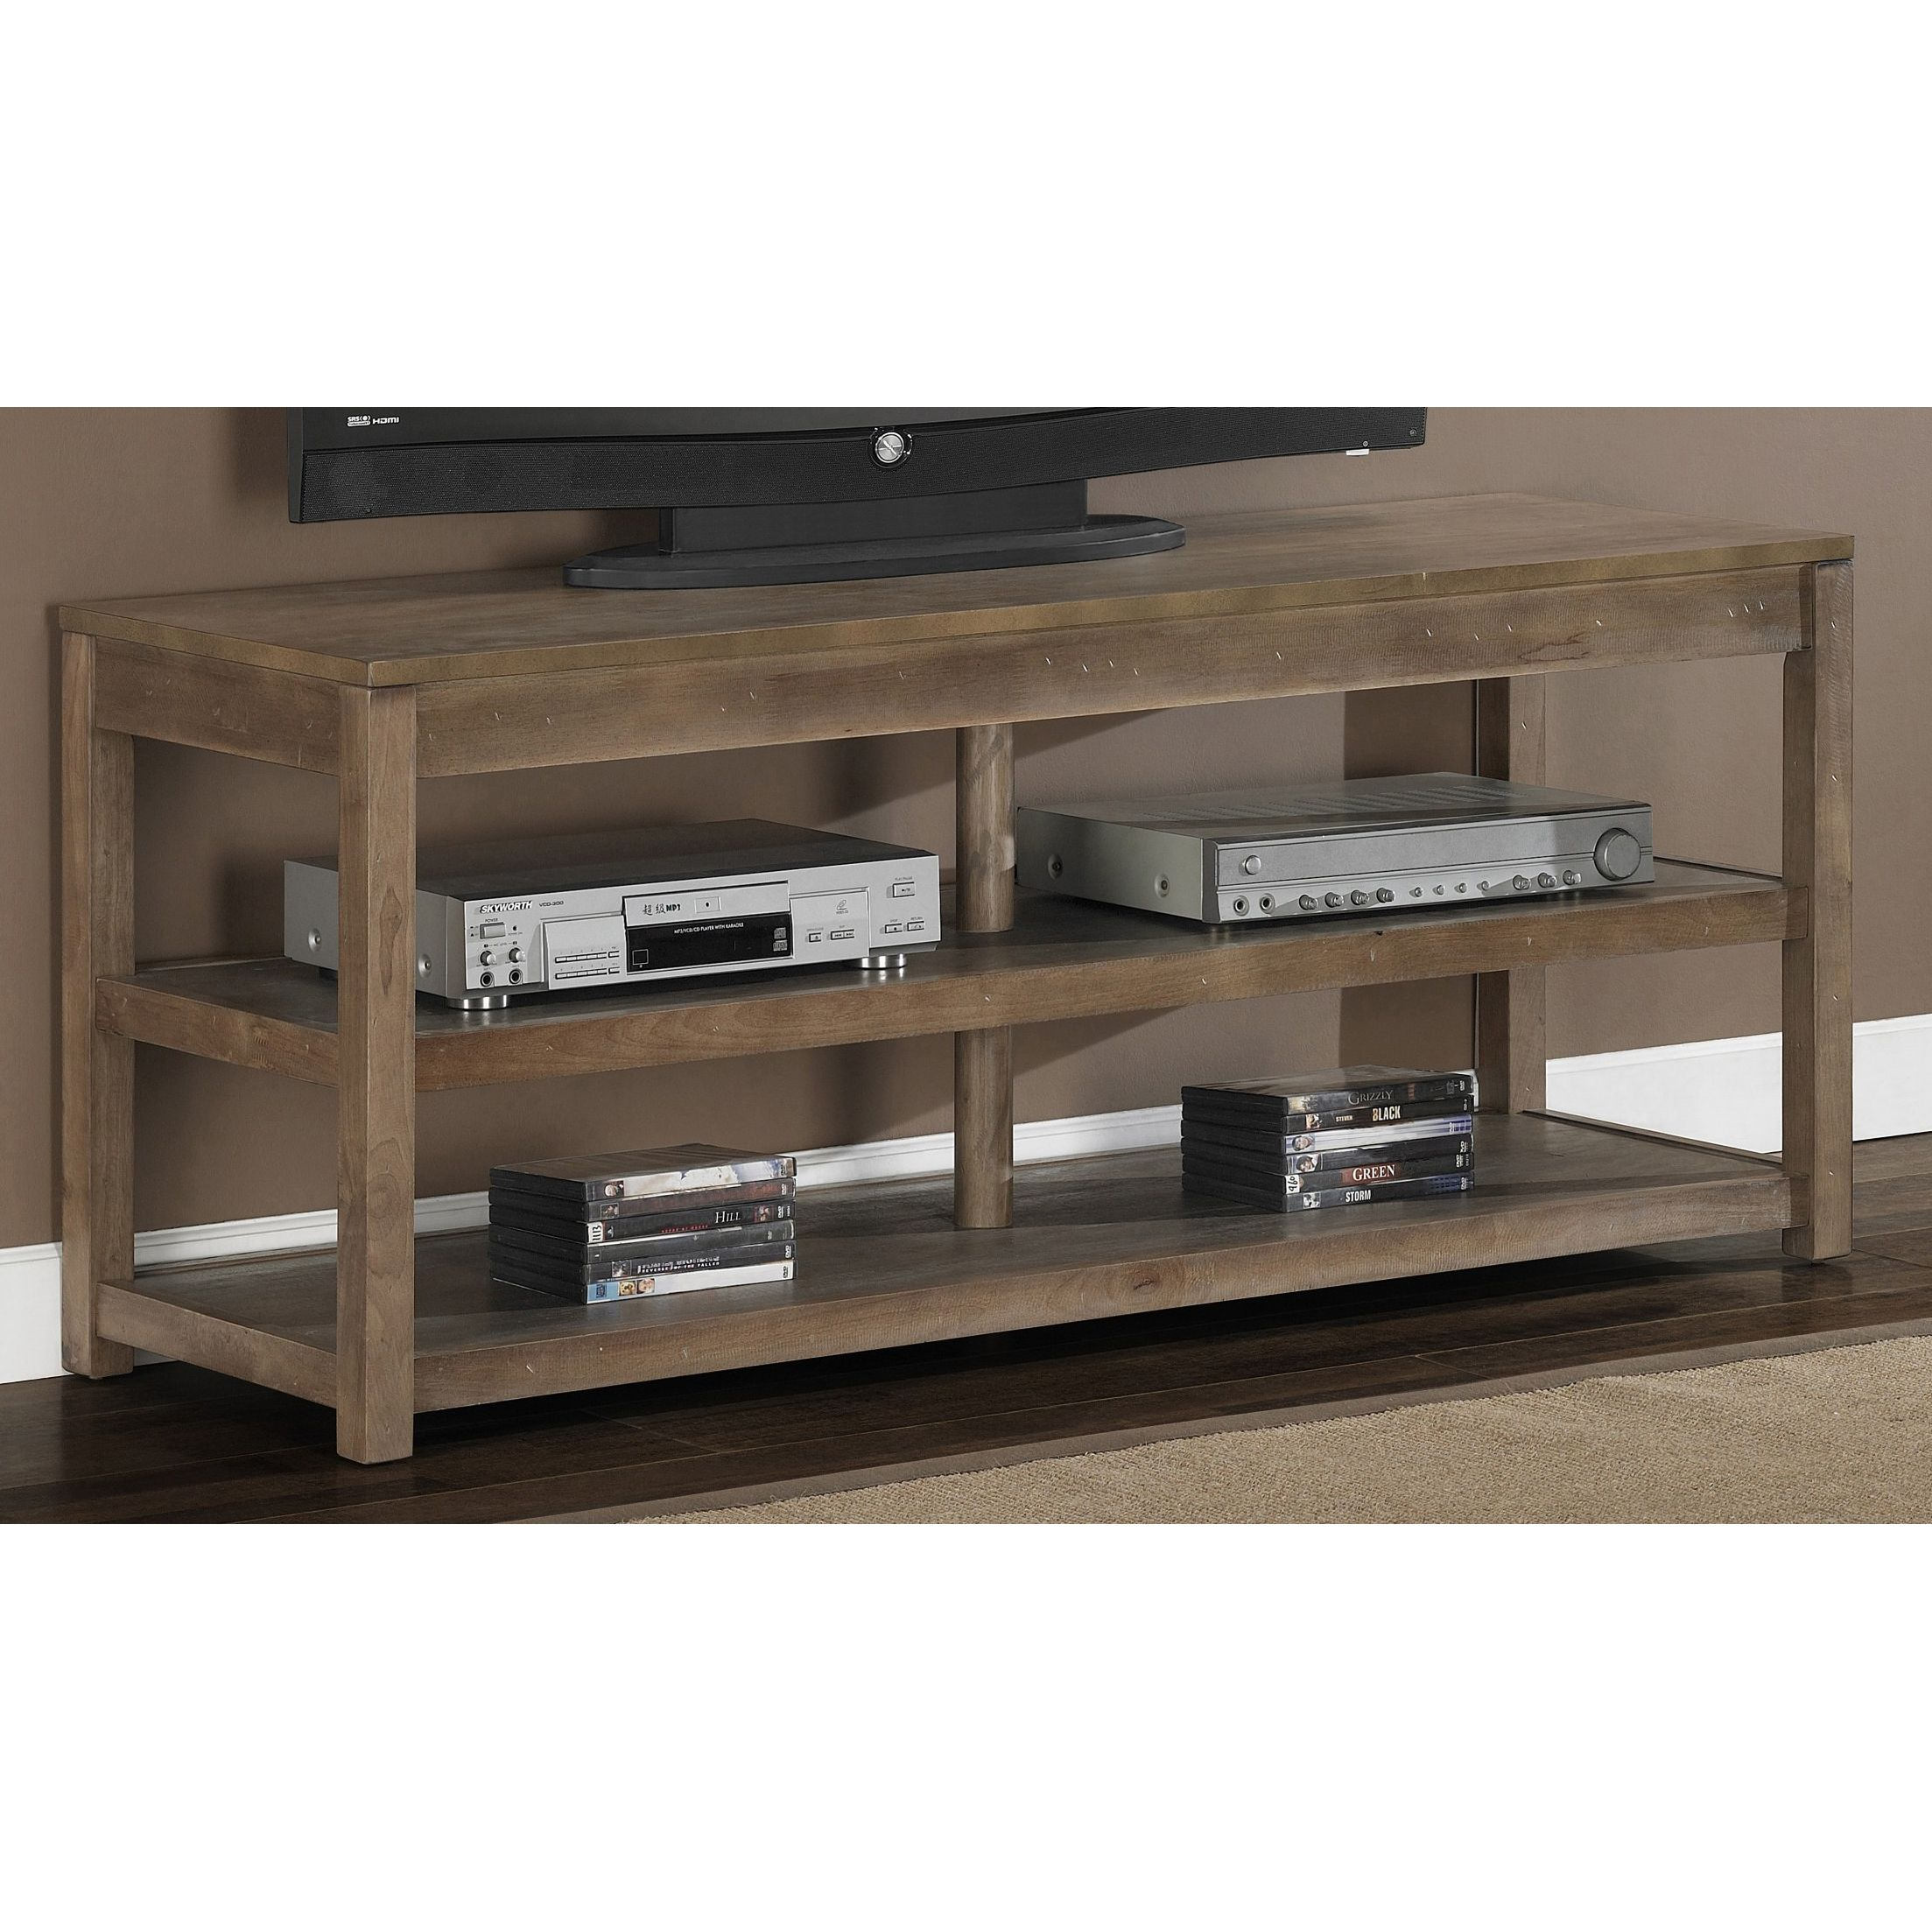 This rustic entertainment center from Tacoma furniture is the perfect addition to your game room or man cave. Featuring two shelves for storage and non-mar foot glides, this solid-wood media center has a weathered gray oak finish for a reclaimed look.